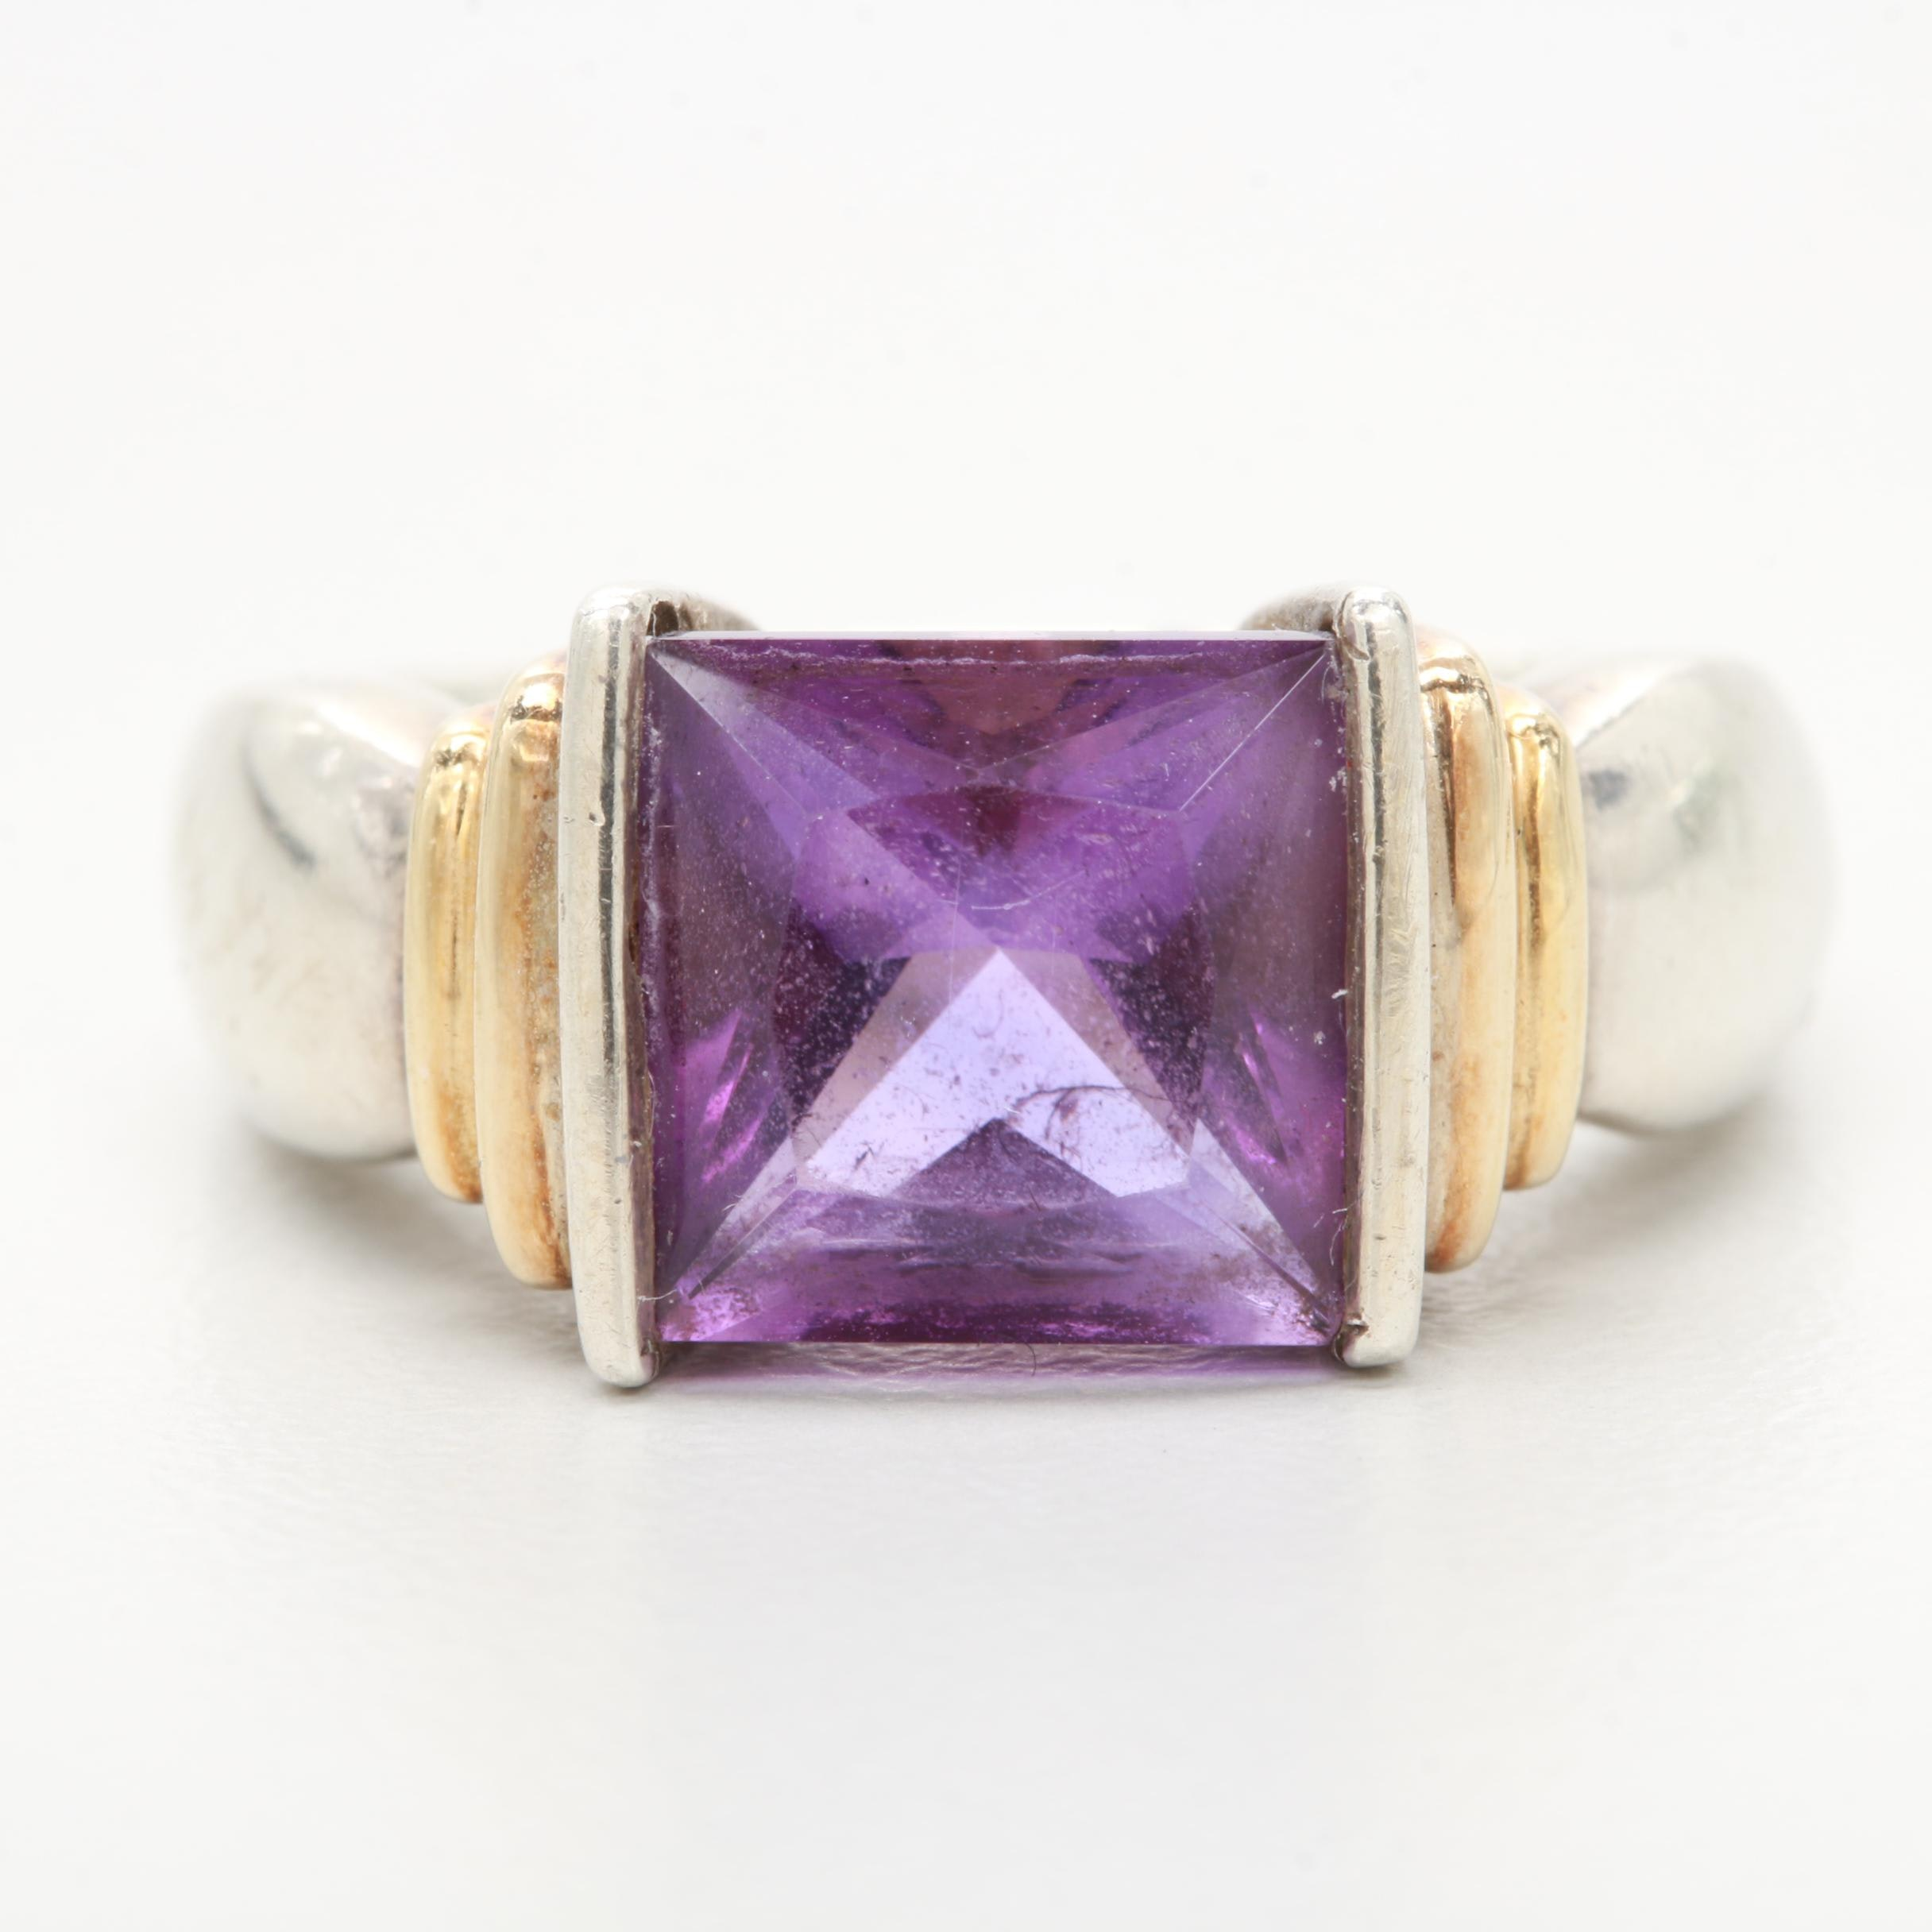 Lorenzo Sterling Silver Amethyst Ring with 18K Yellow Gold Accents